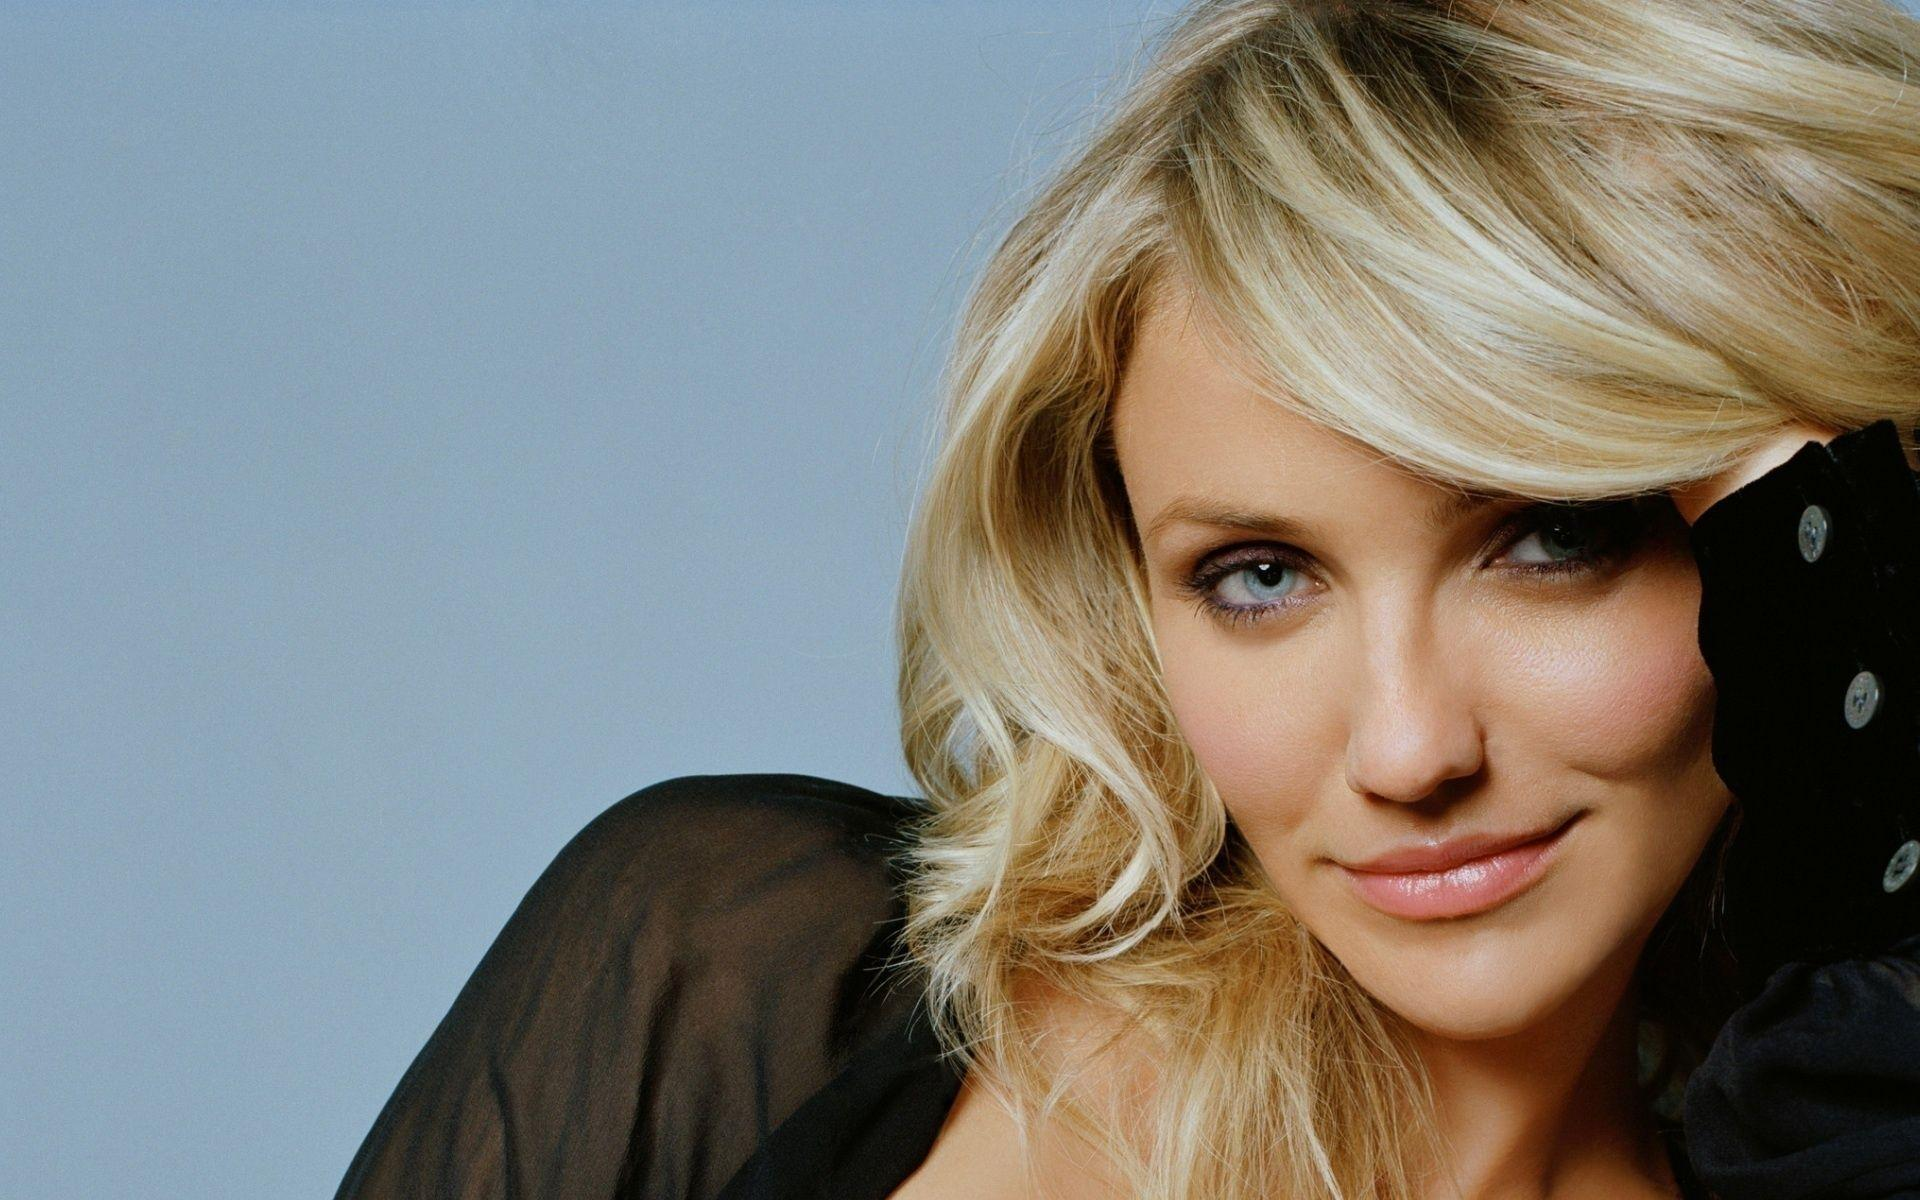 Cameron Diaz Wallpaper 55479 1920x1200 px ~ HDWallSource.com